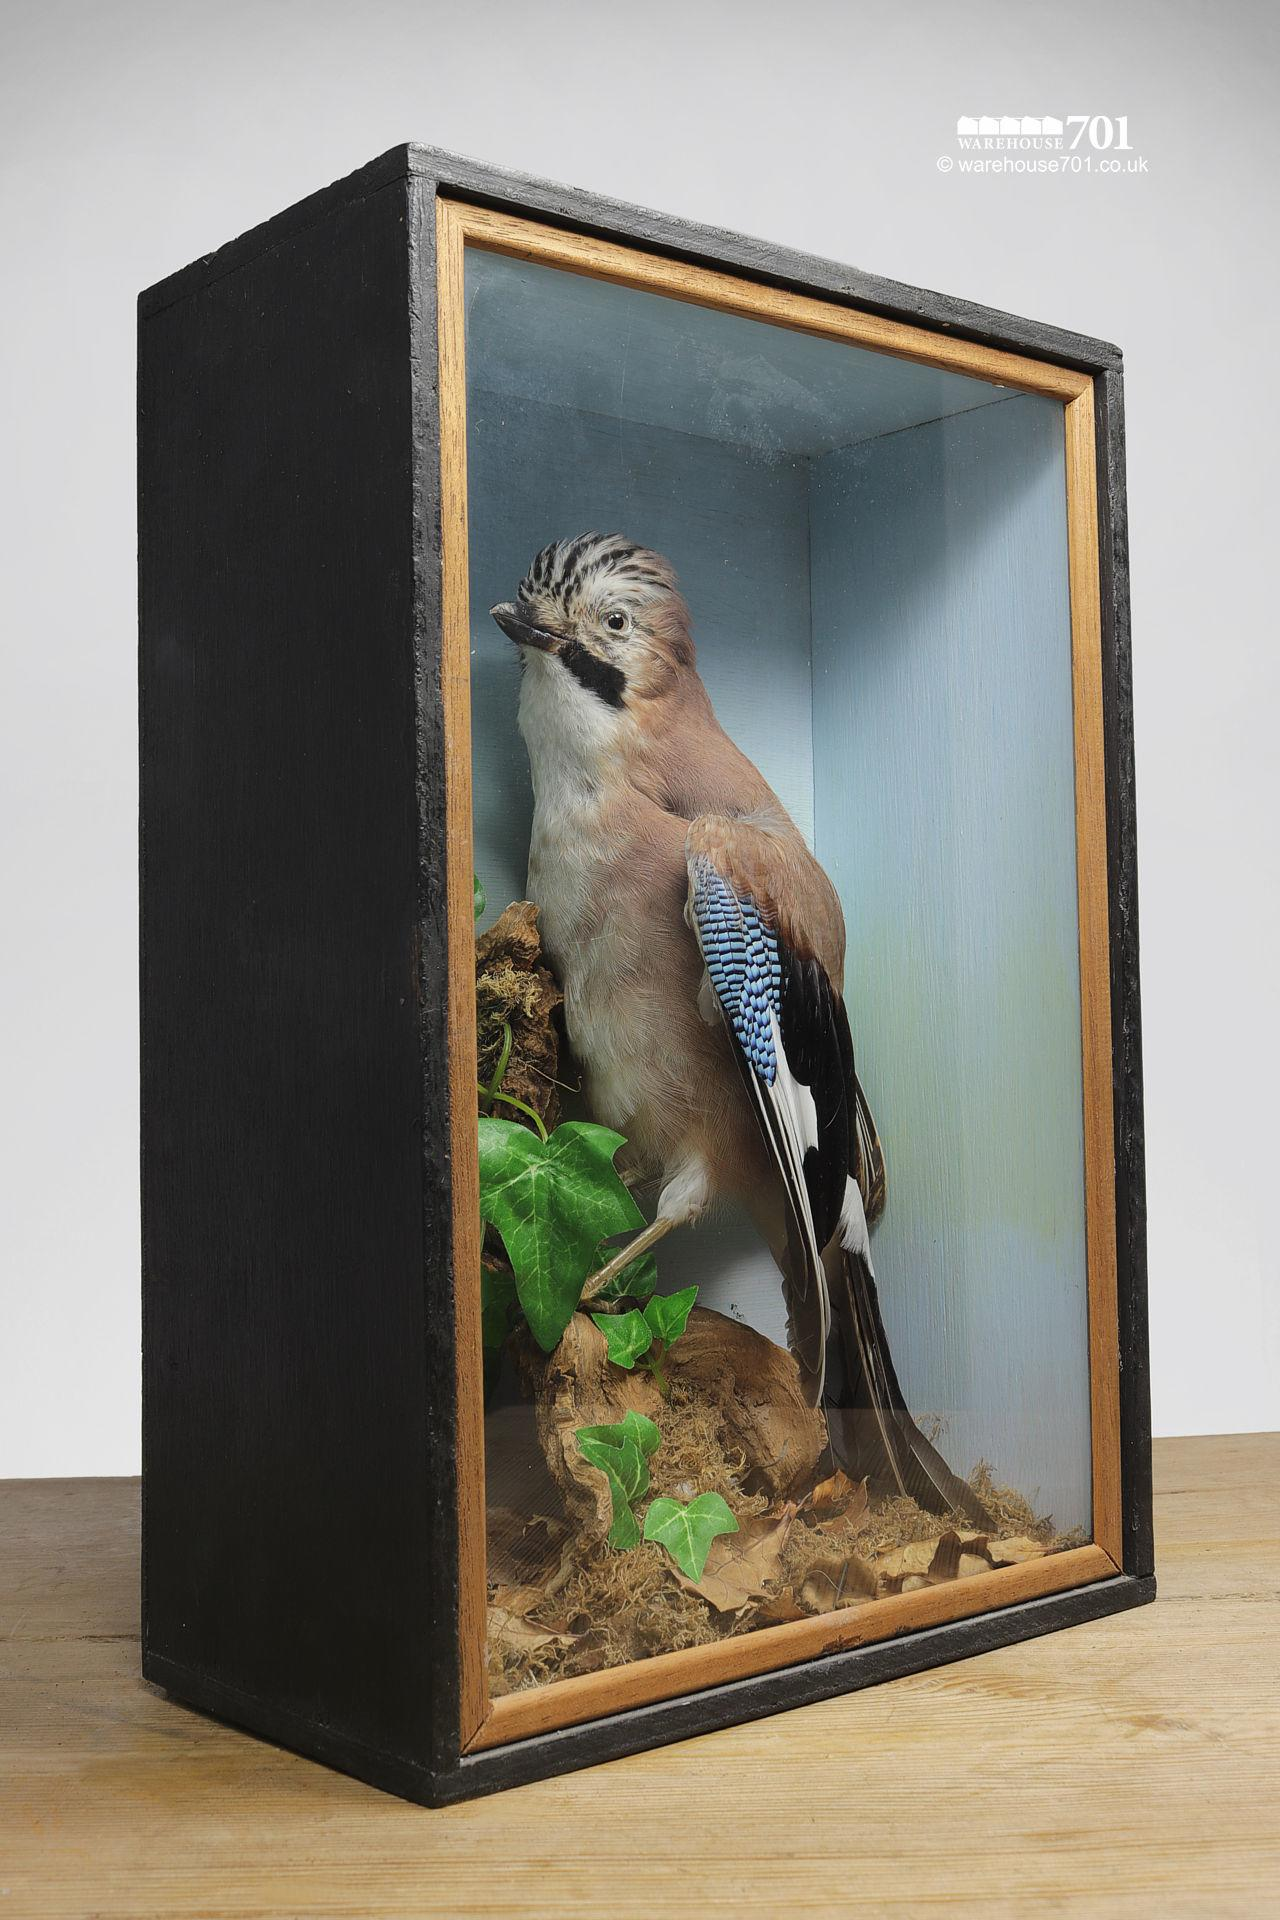 Taxidermy Stuffed Jay Bird in a Glazed Case #3